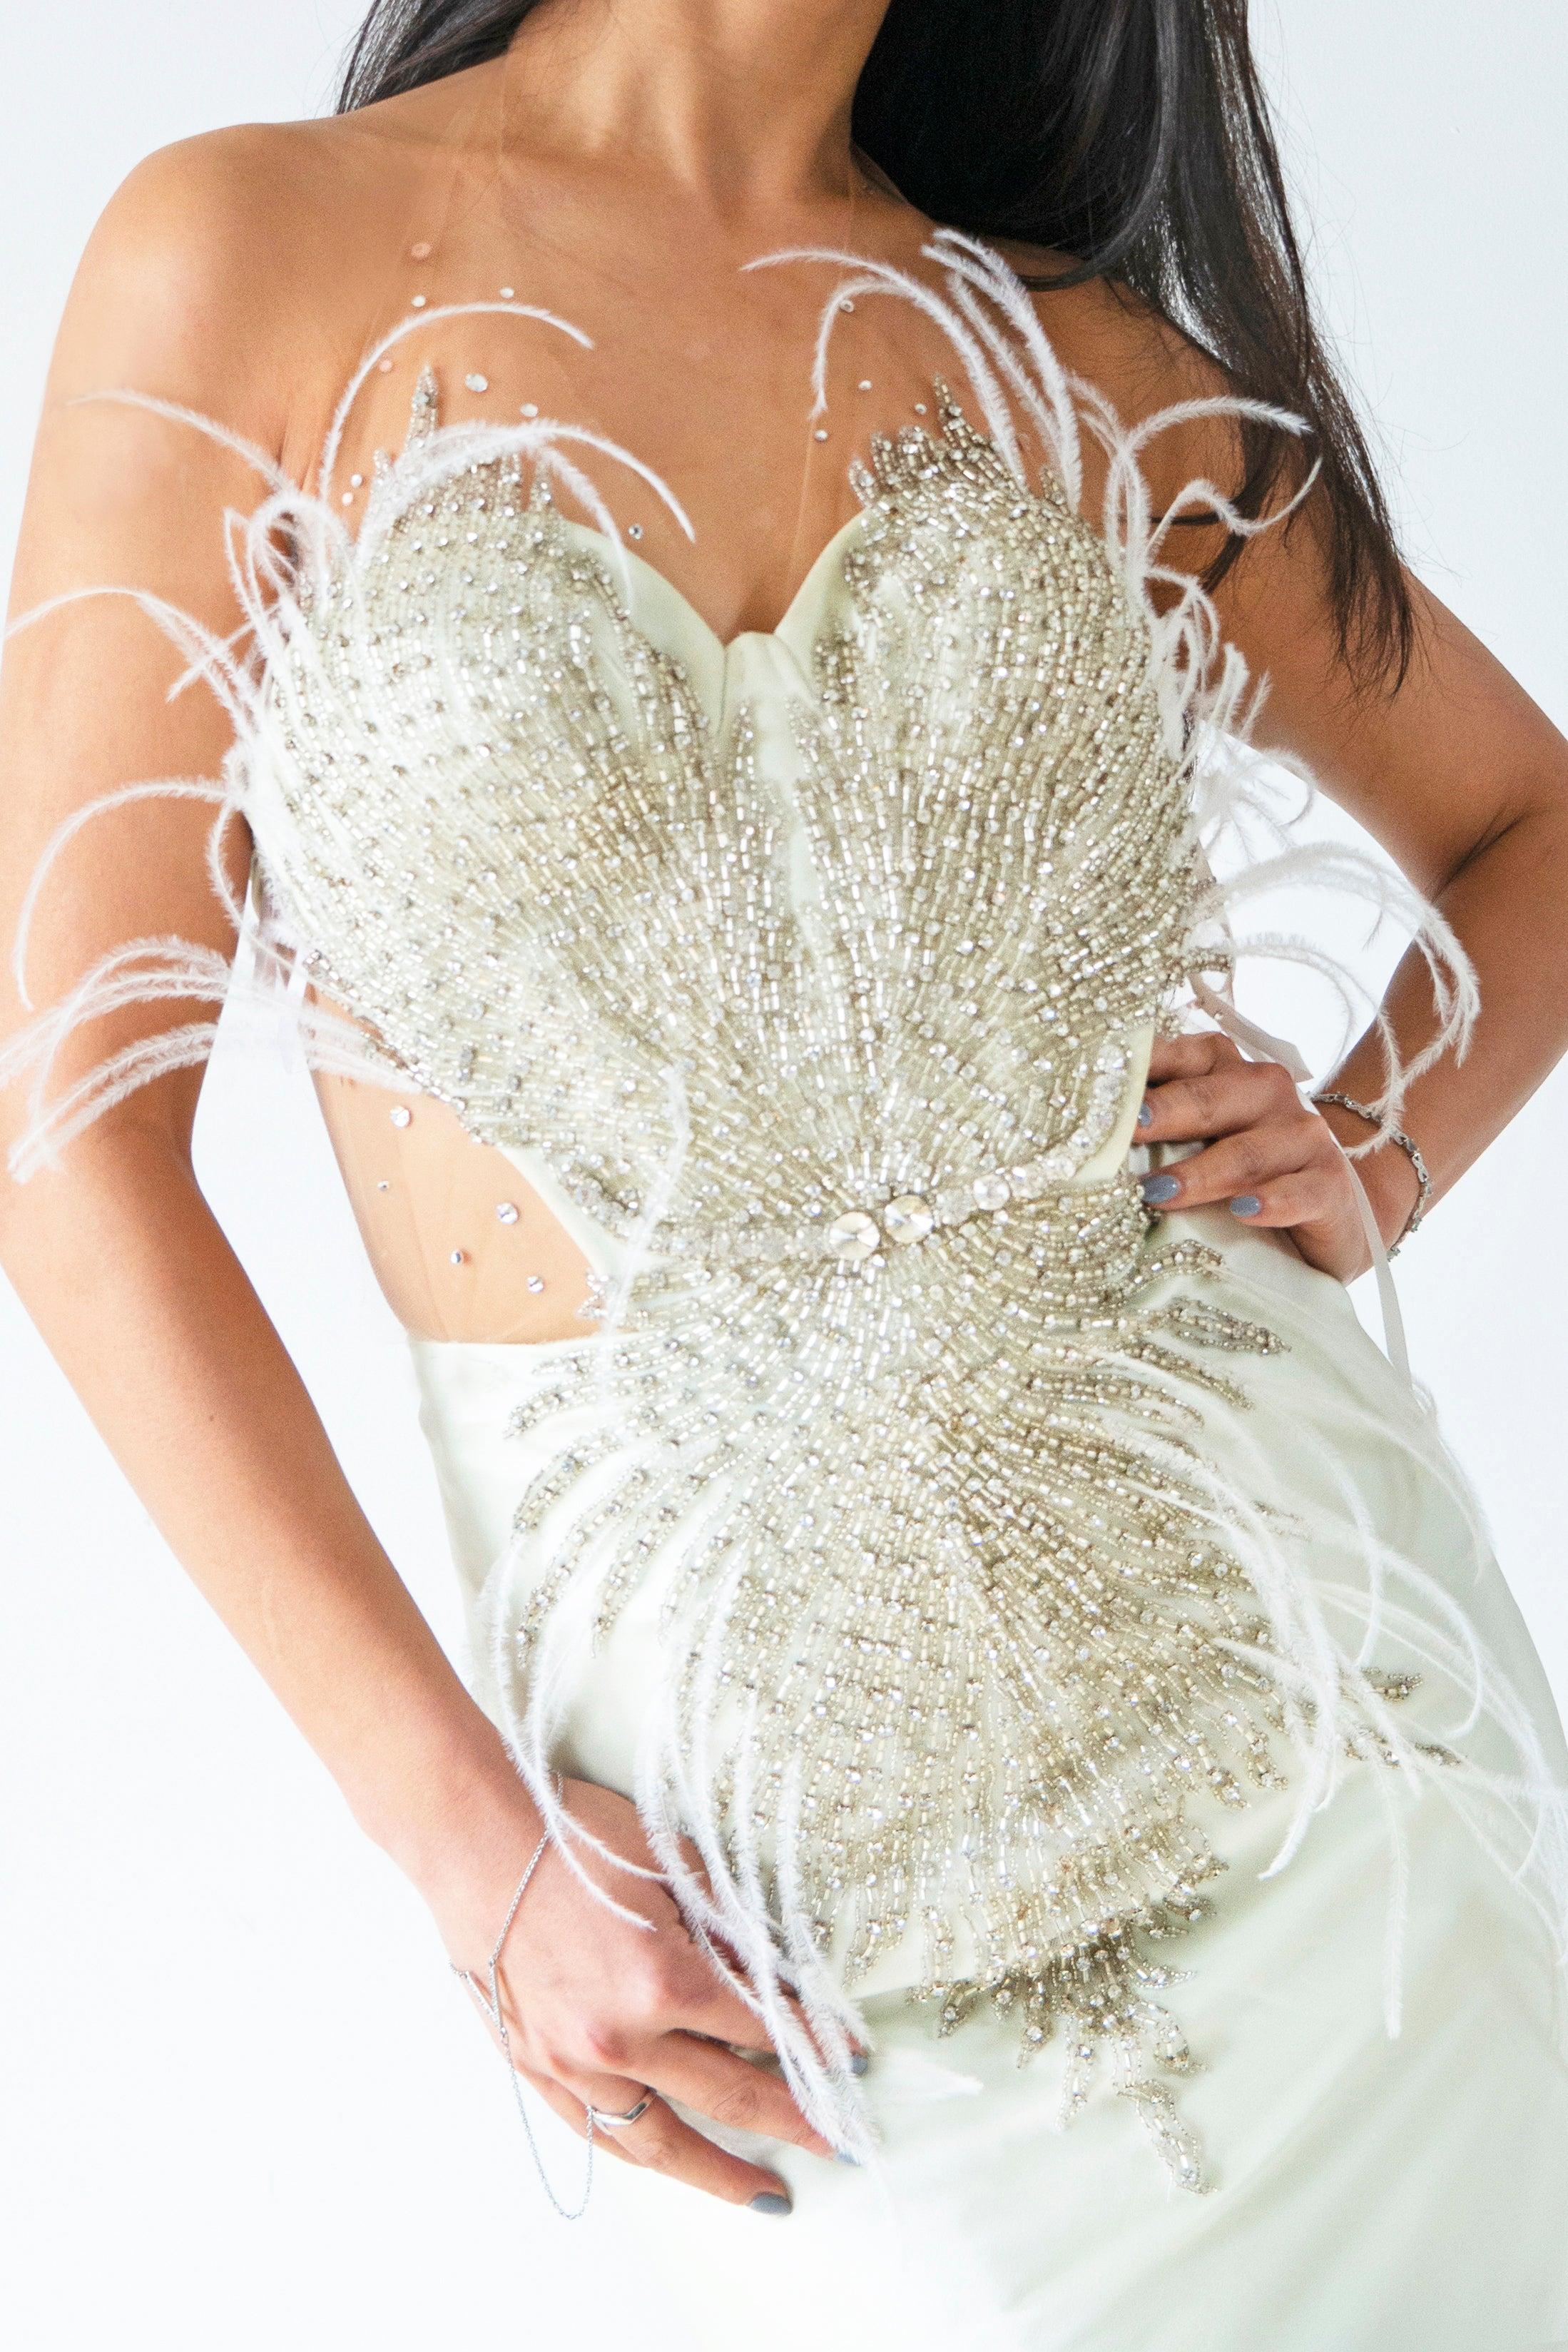 Mint Crystal Beaded with Feathers Evening Gown - KxLNewYork